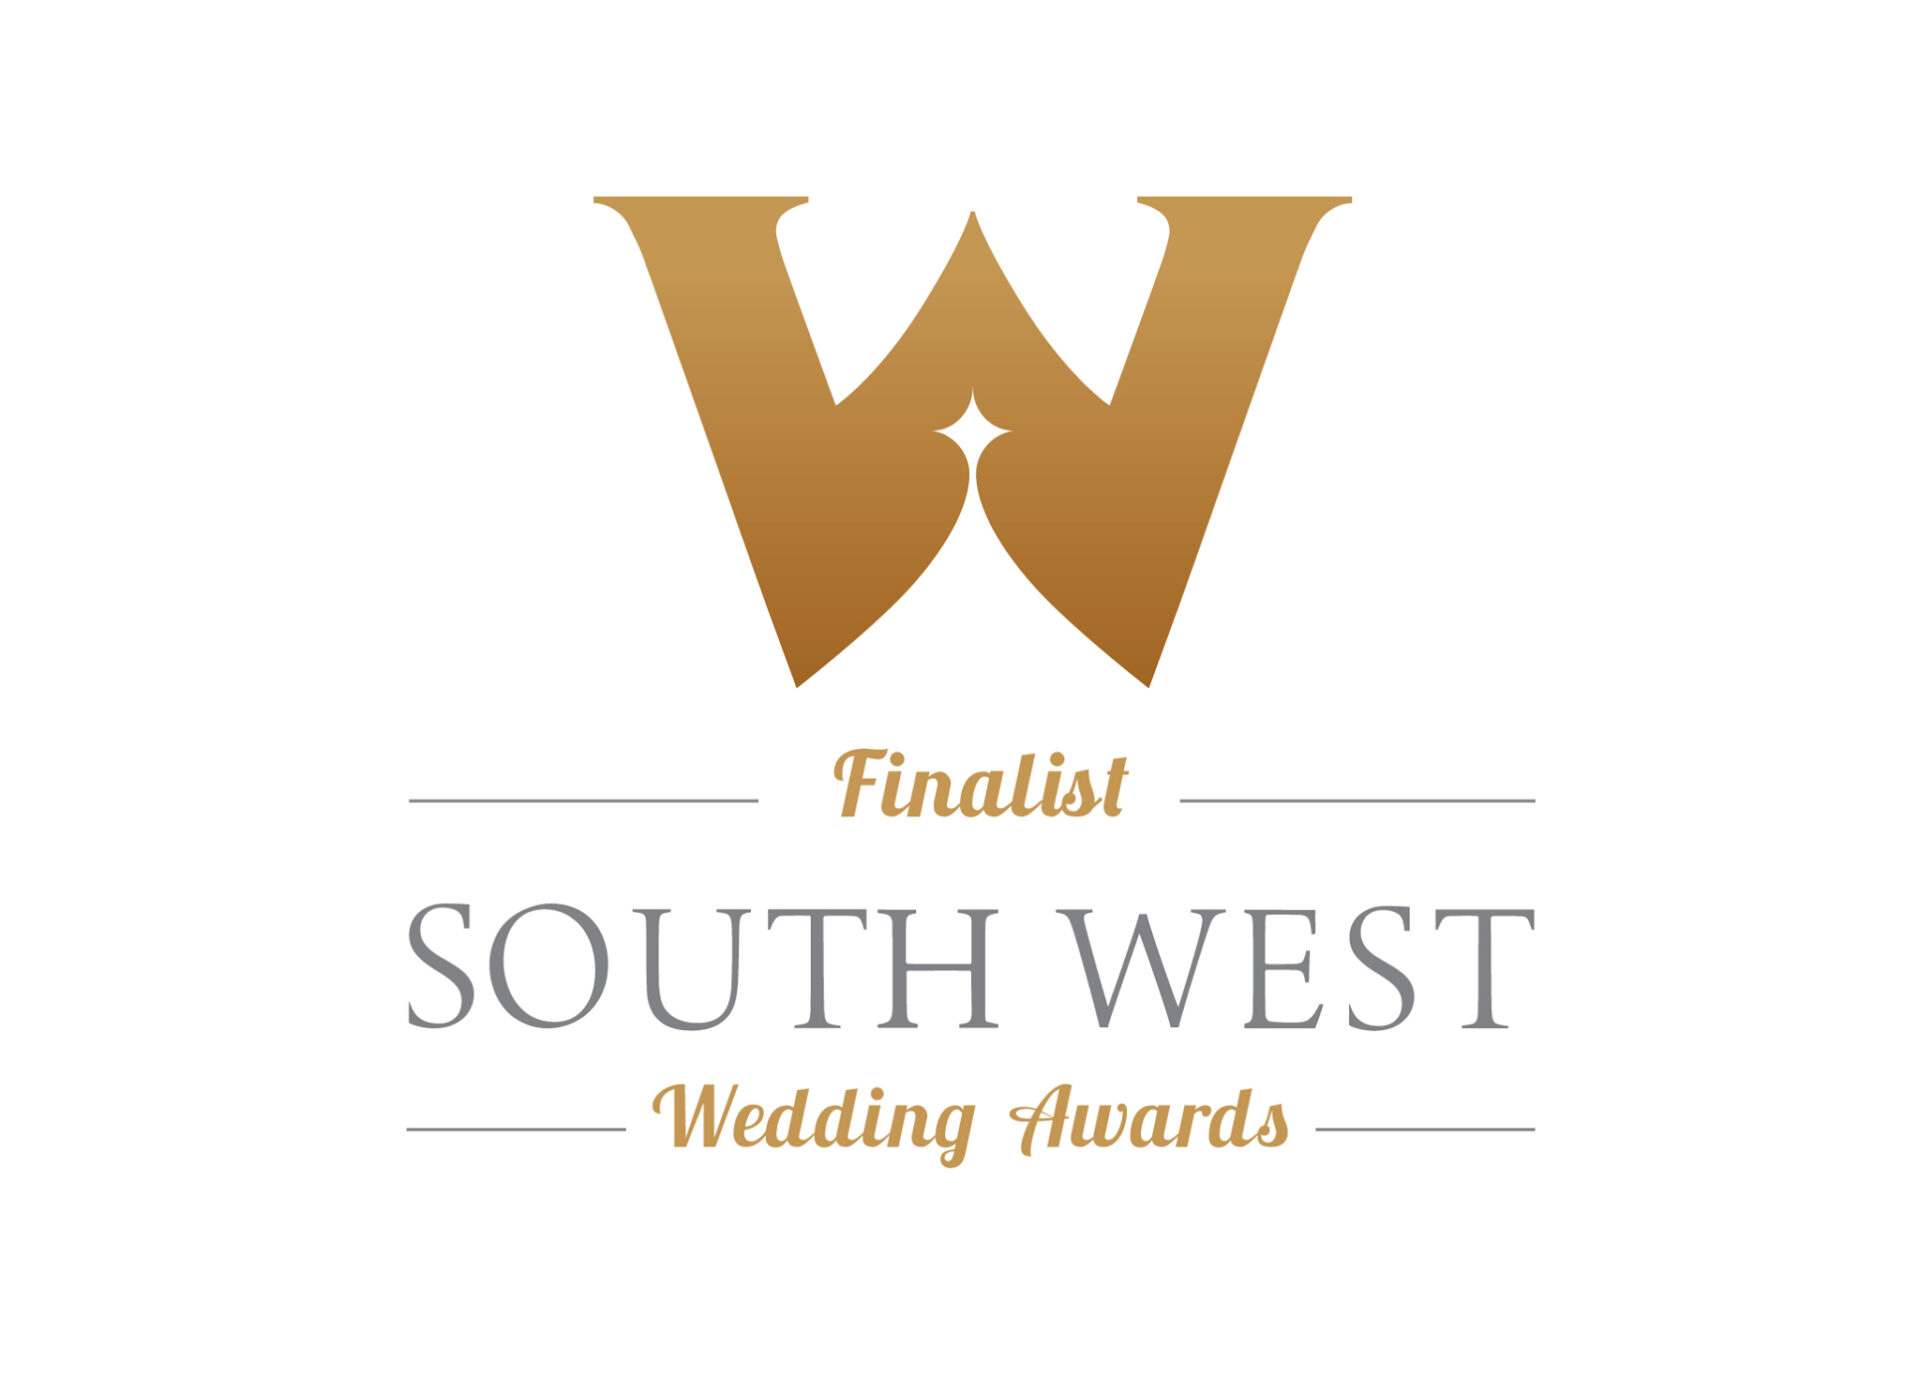 South West Wedding Awards Finalist Tracey Warbey Photography